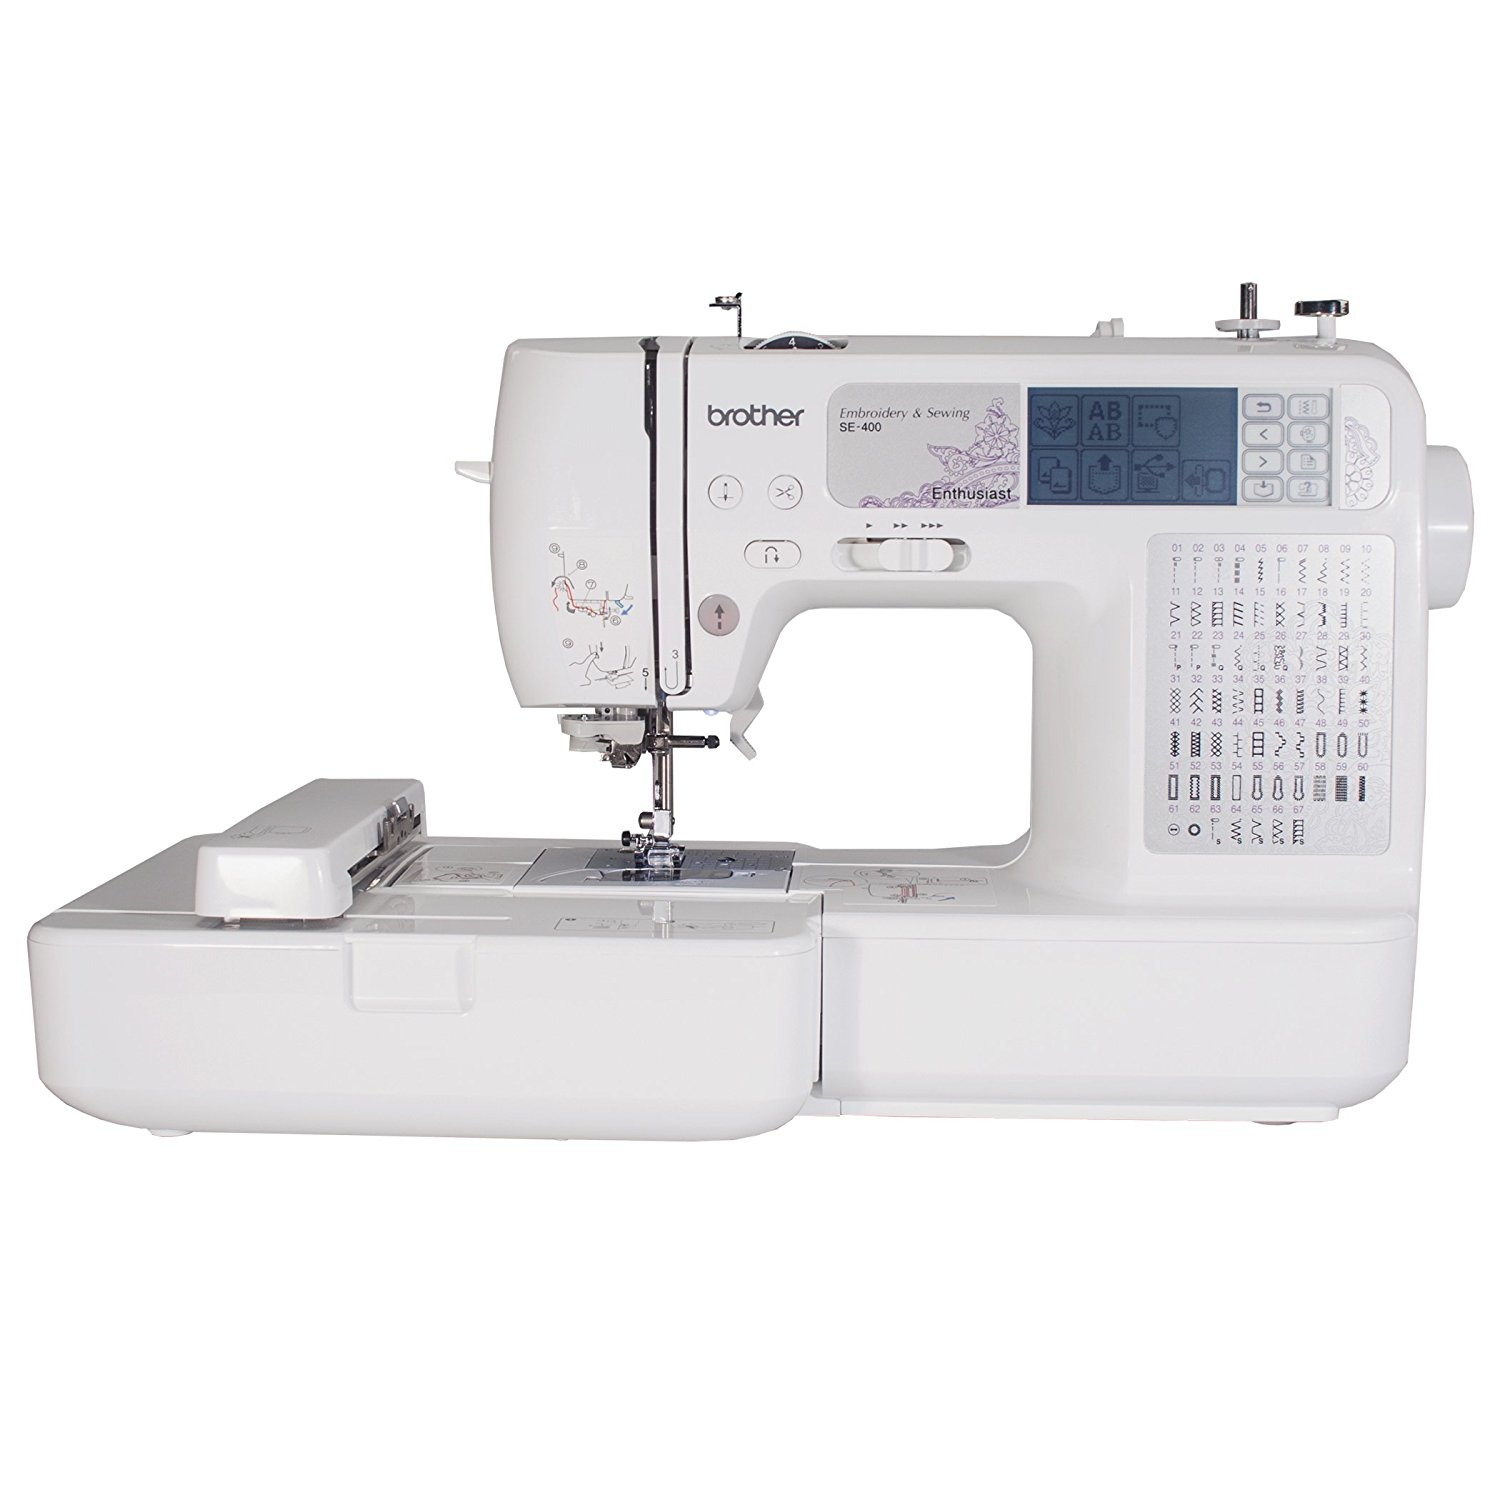 Brother Se400 Sewing Machine Review 2019 Top Wifi Thermostat